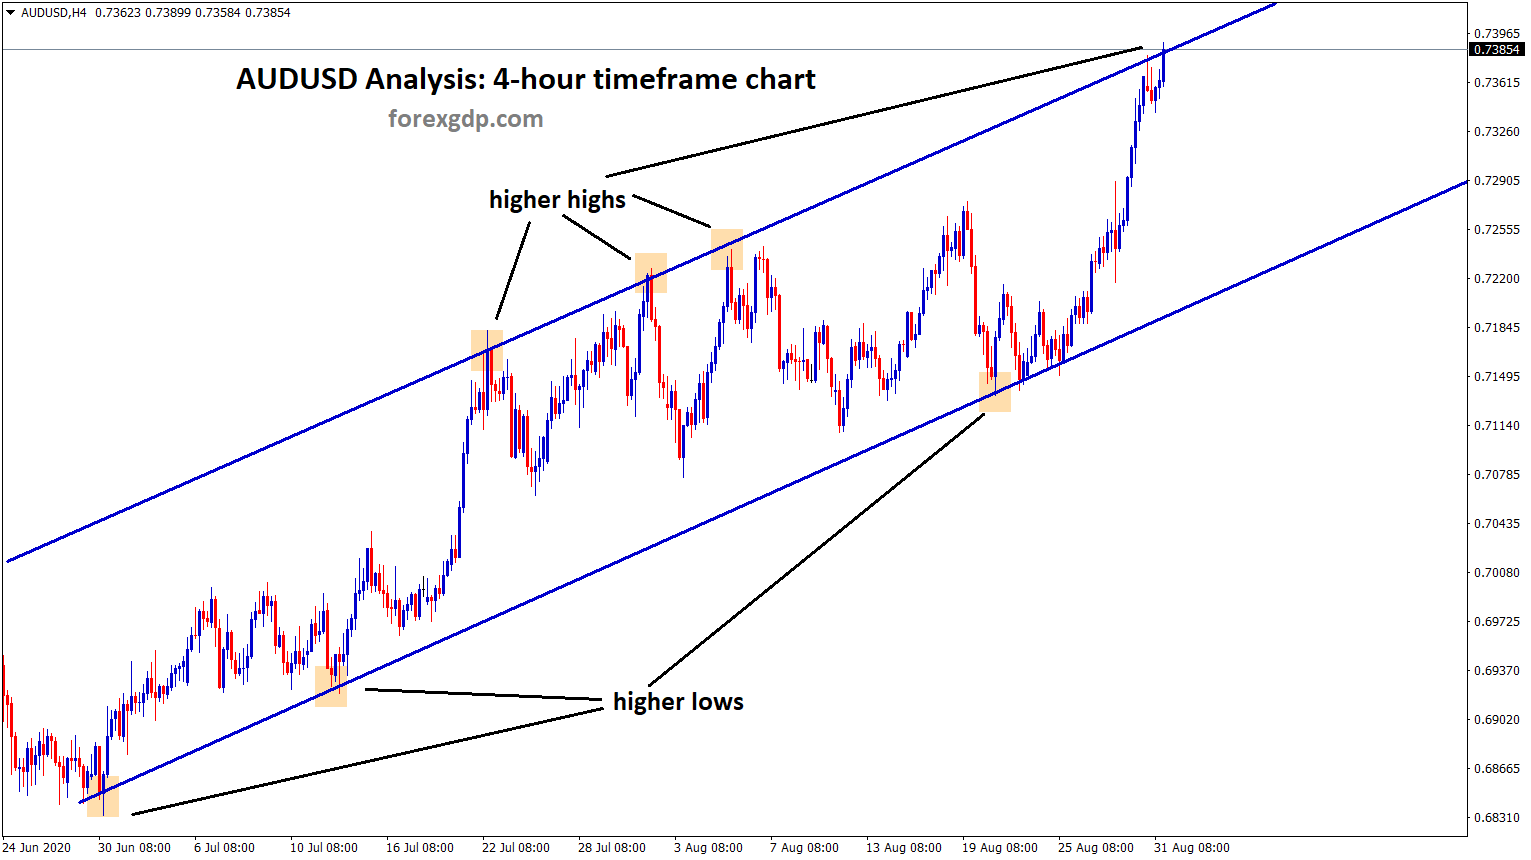 Ascending channel analysis on AUDUSD 4hour tf